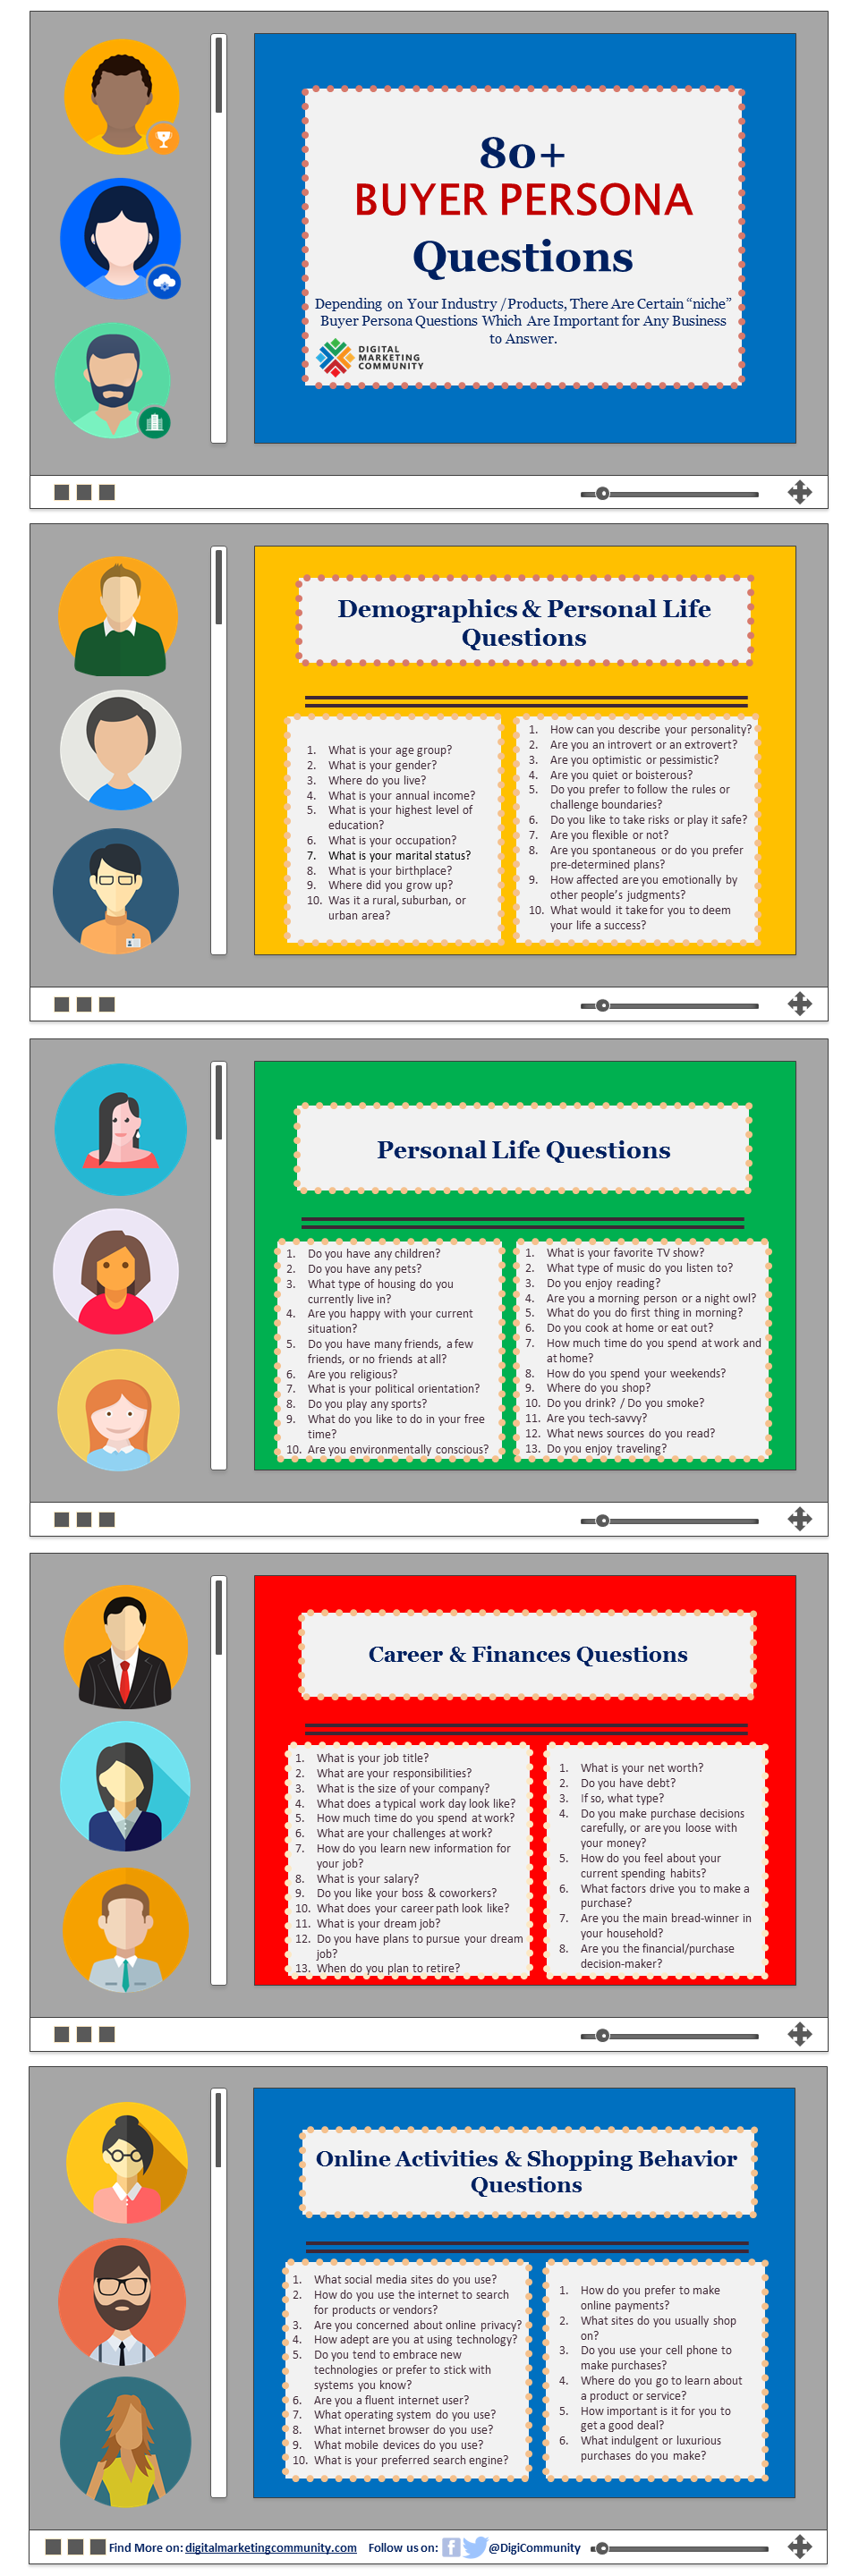 """Depending on Your Industry /Products, There Are Certain """"niche"""" Buyer Persona Questions Which Are Important for Any Business to Answer."""